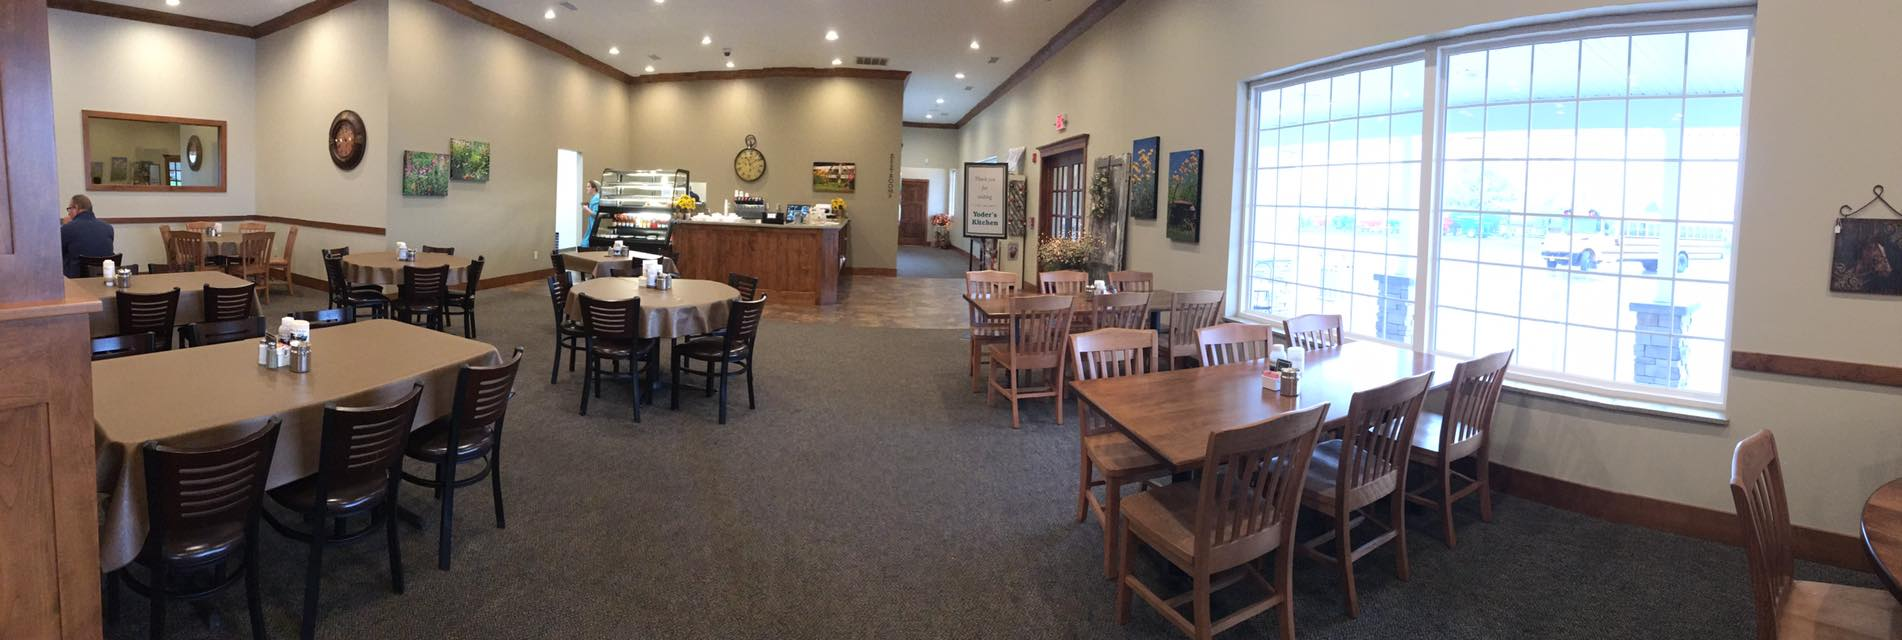 the inside of the dining area of Yoder's Kitchen